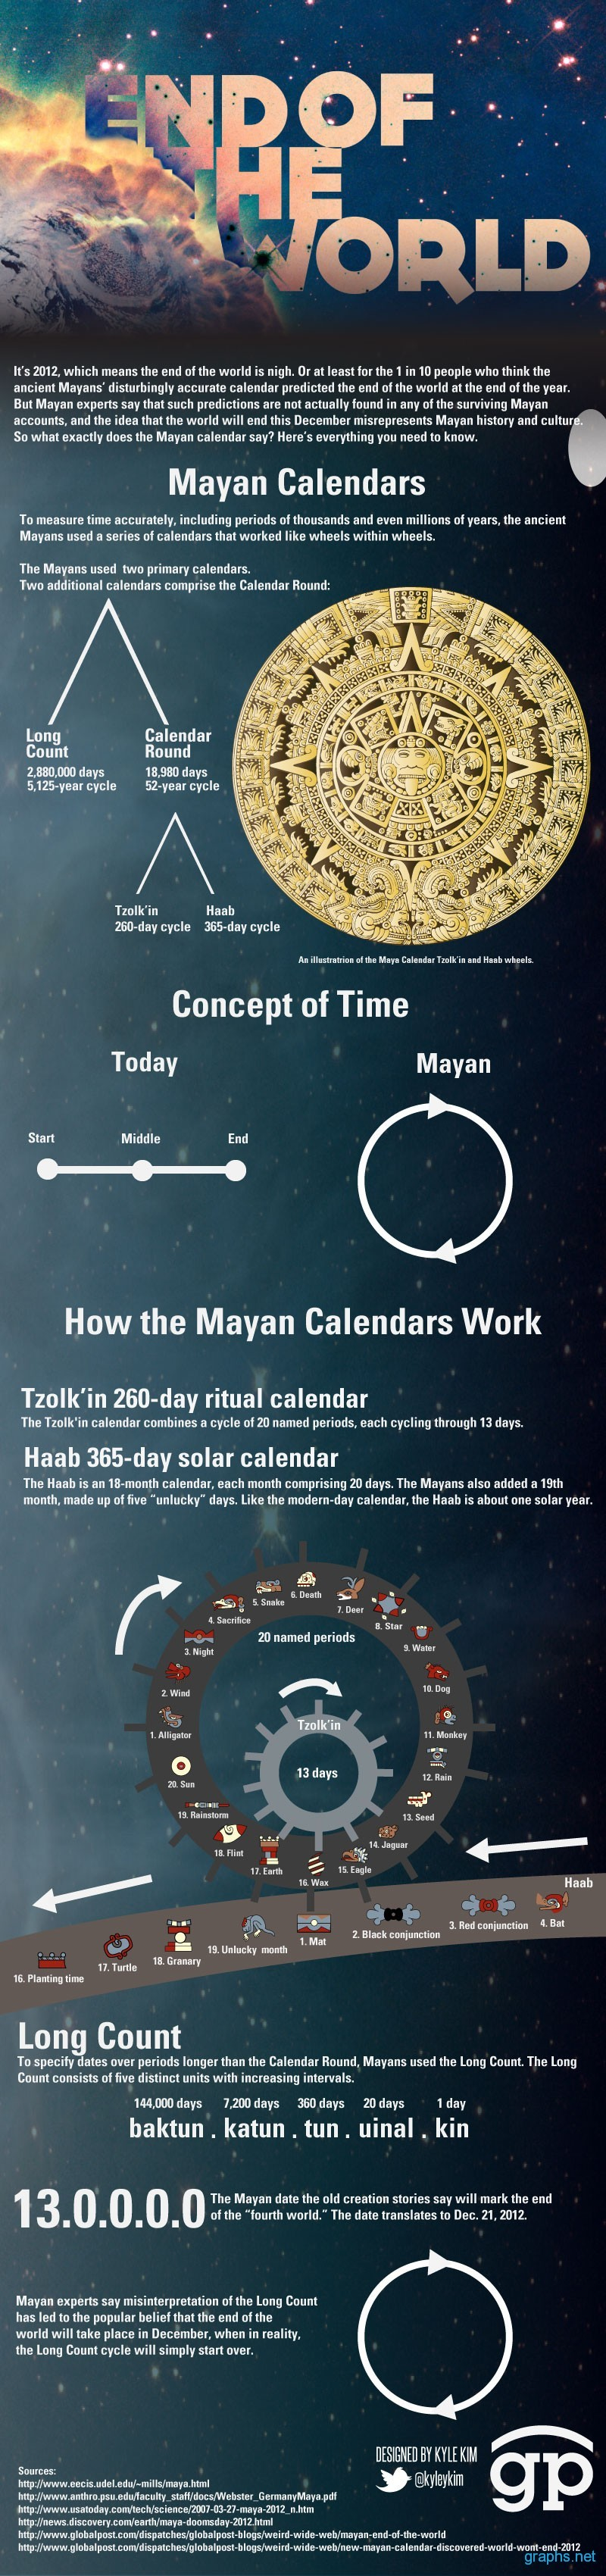 End of the World 2012 Mayan